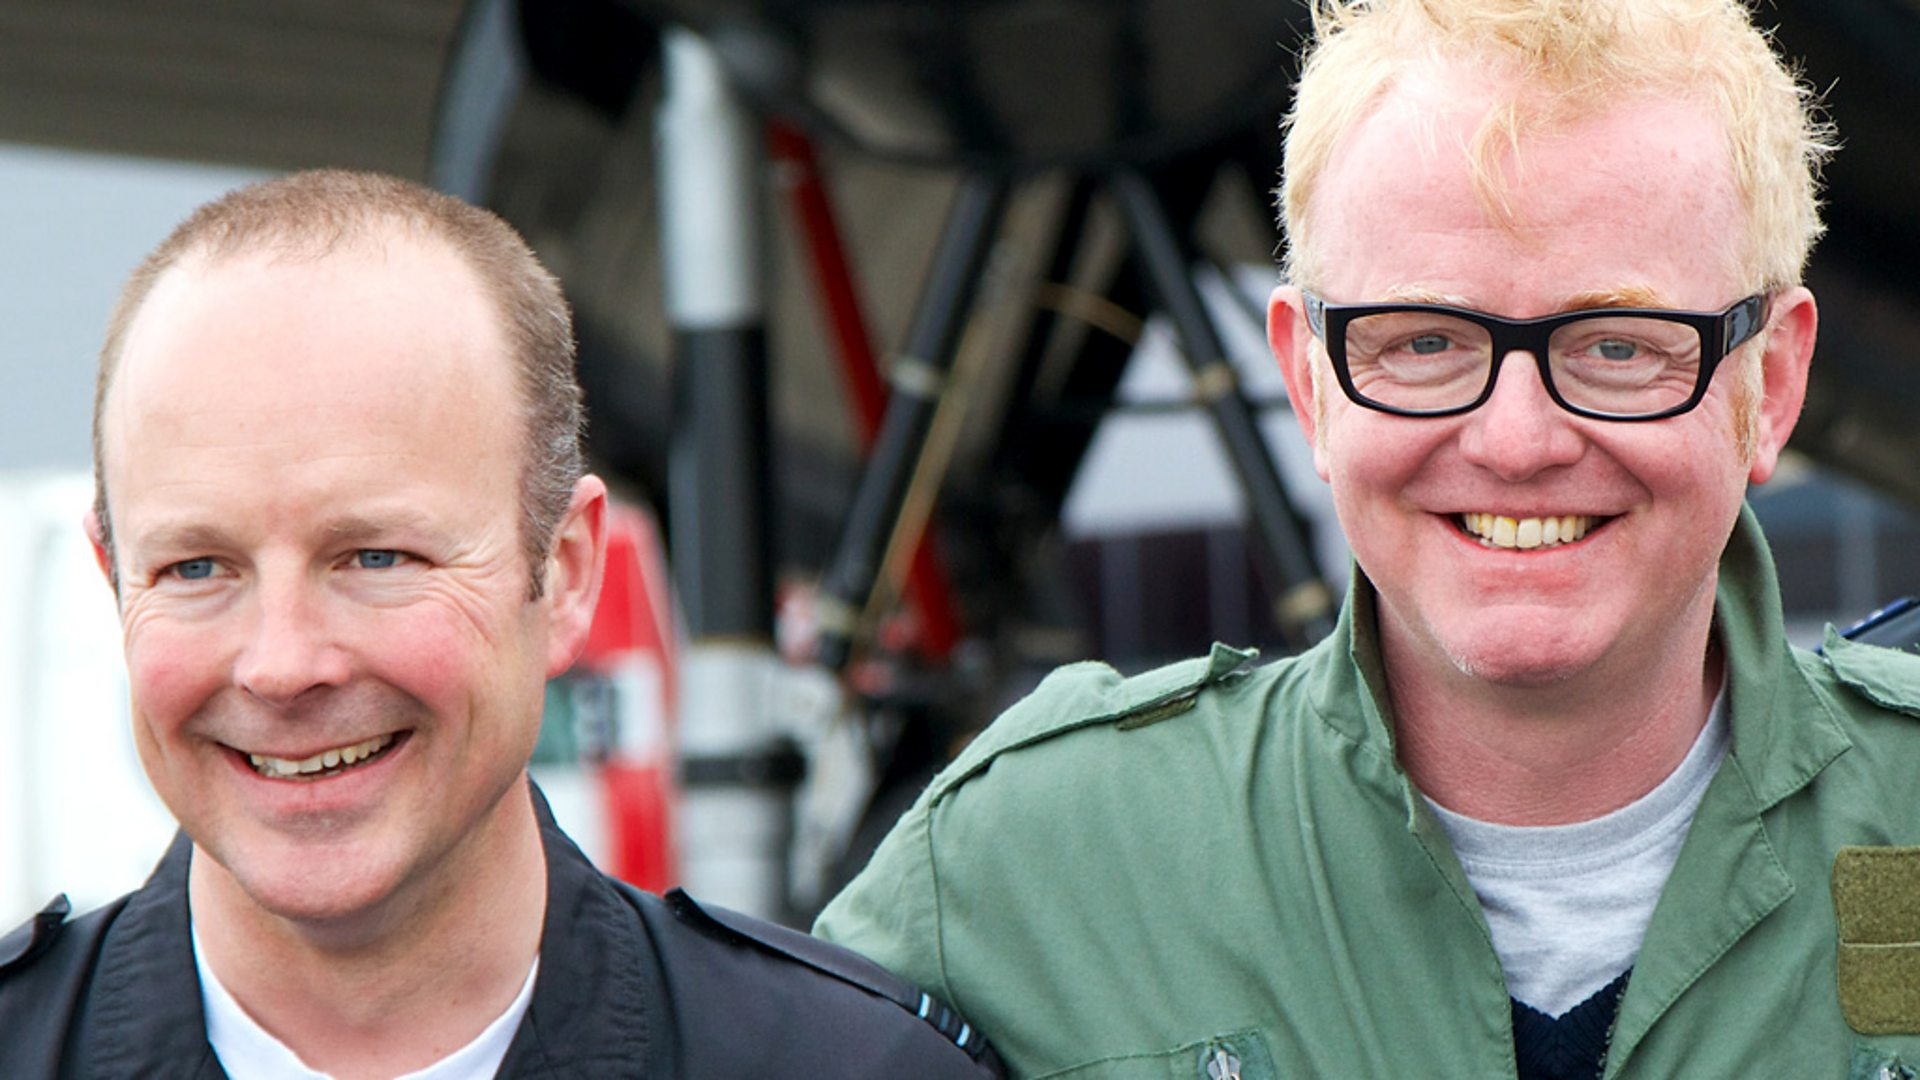 BBC Radio 2 - The Chris Evans Breakfast Show, The Dambusters 70 Years On, Spitfire pilot Duncan Mason starts his engine - p0198svd